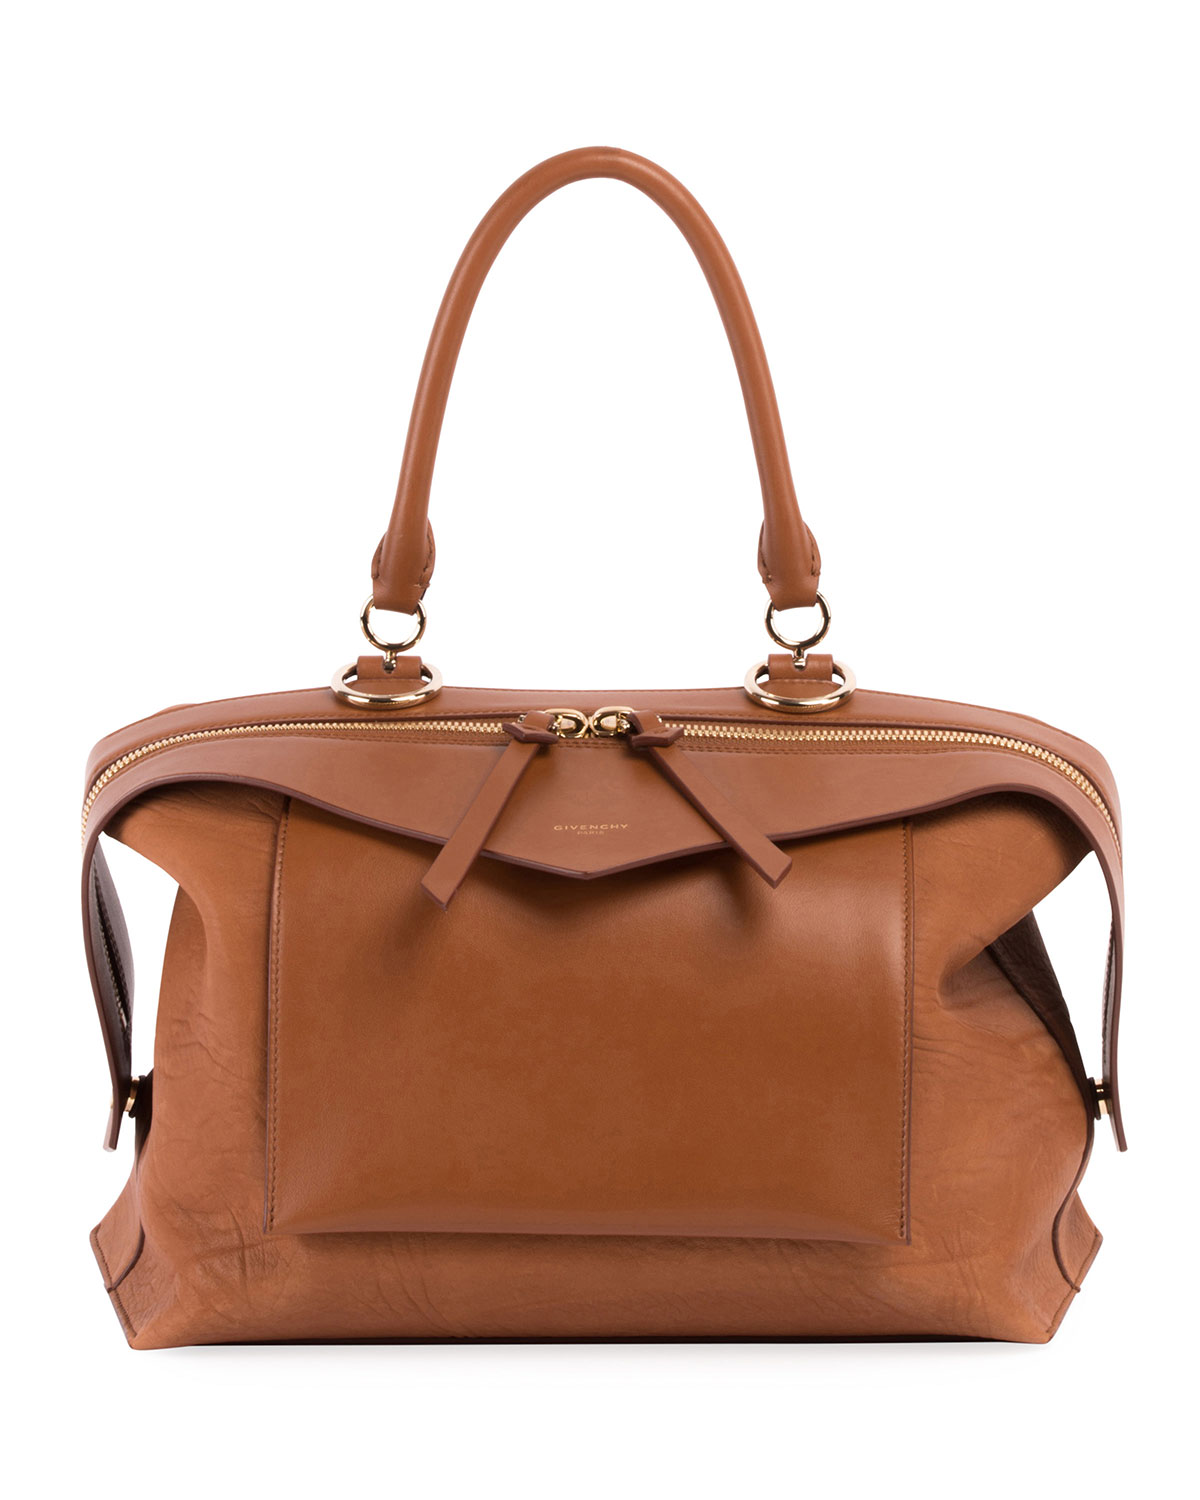 12aaf3fb5b95 Givenchy Sway Small Leather Top-Handle Bag